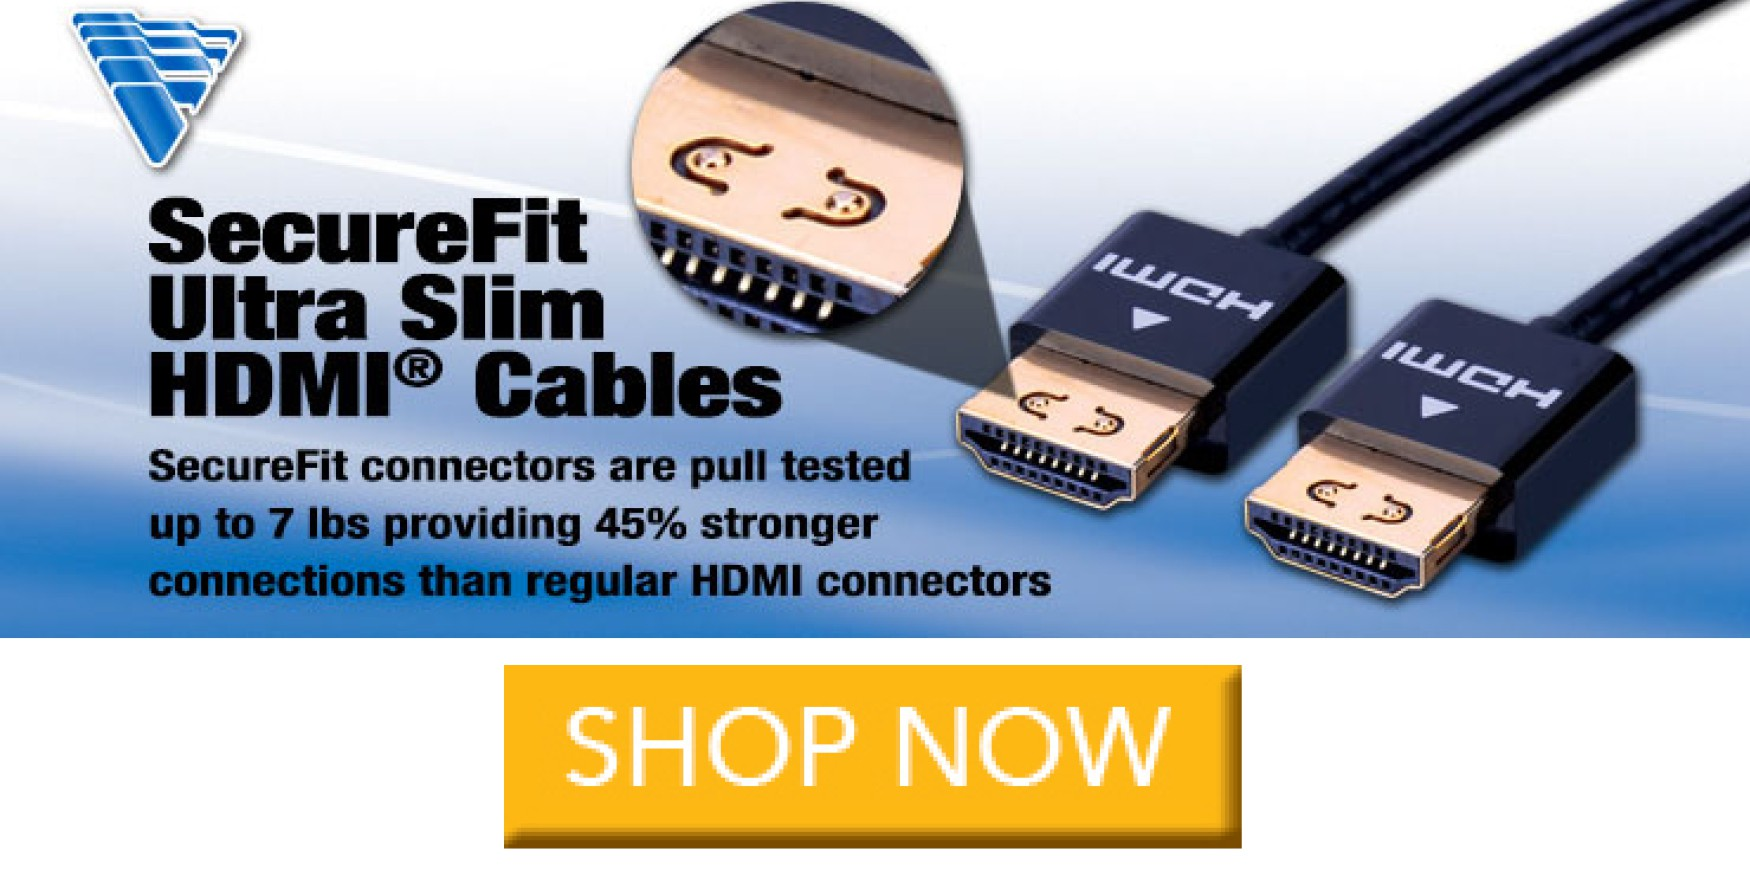 Vanco HDMI Secure Fit